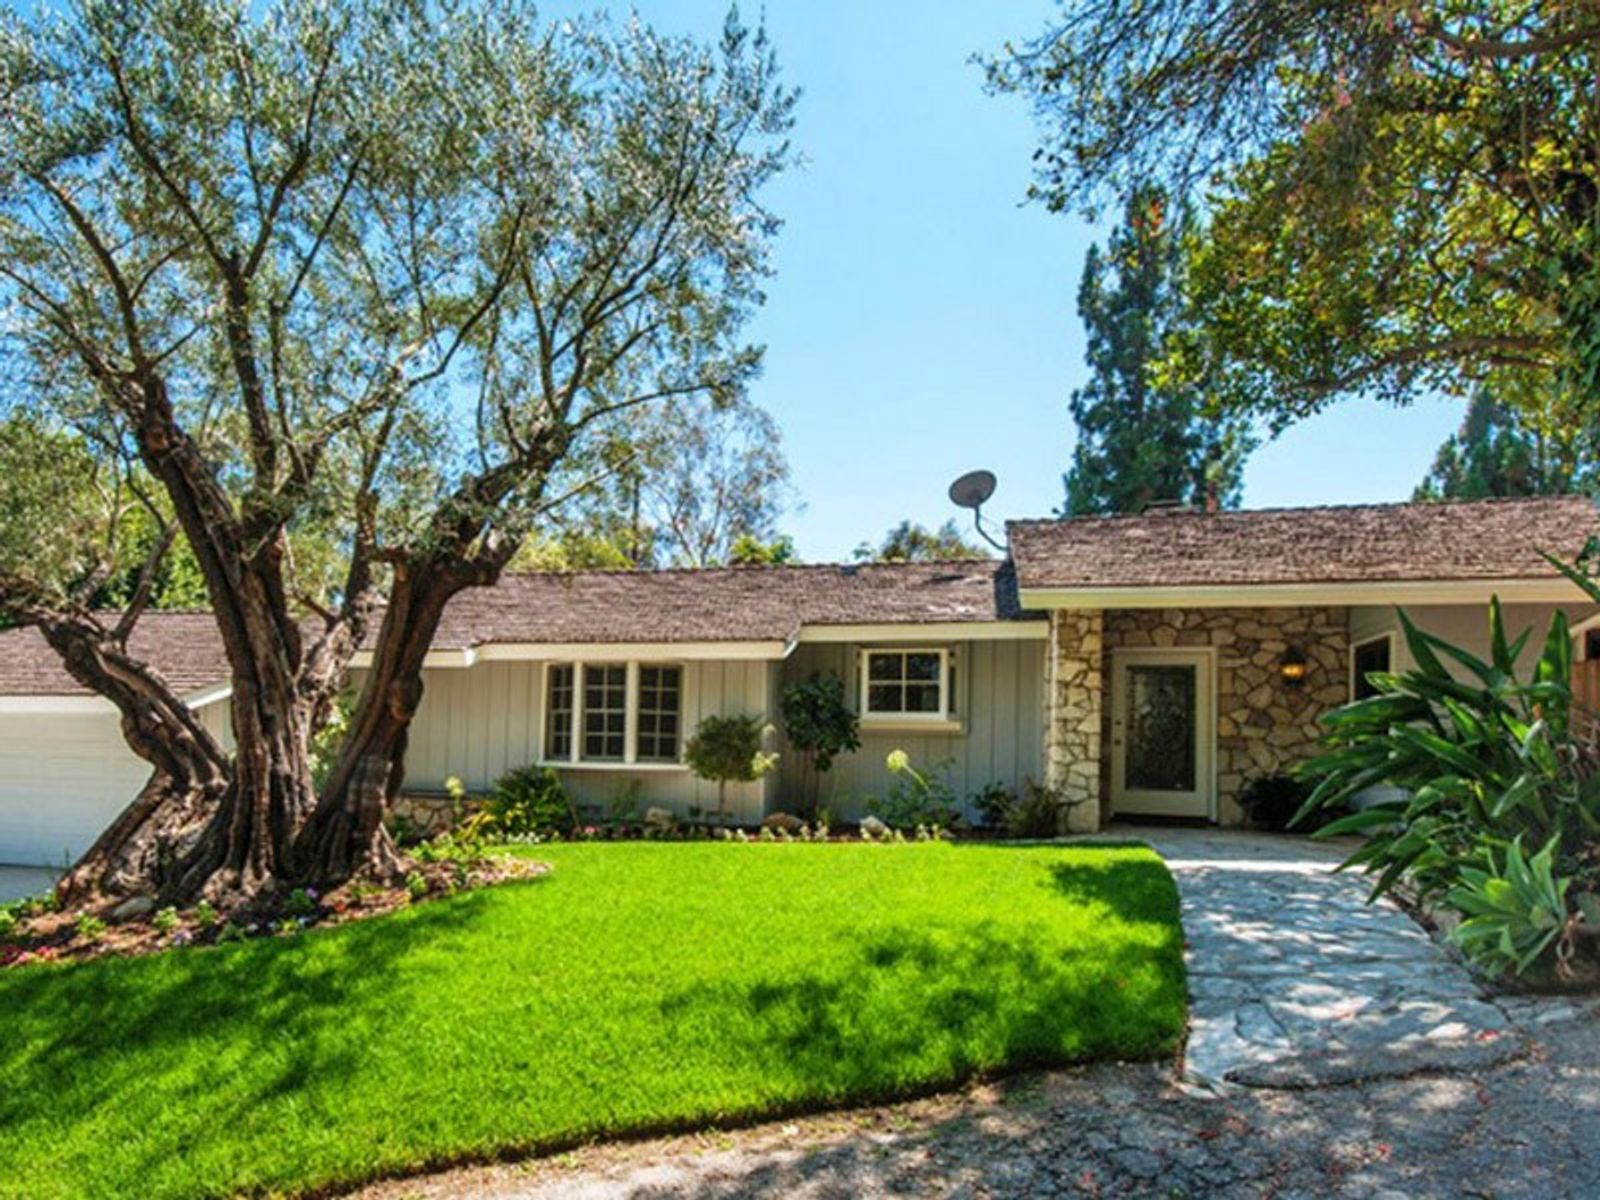 Studio City Celebrity Neighborhood, Studio City CA Single Family Home - Los Angeles Real Estate